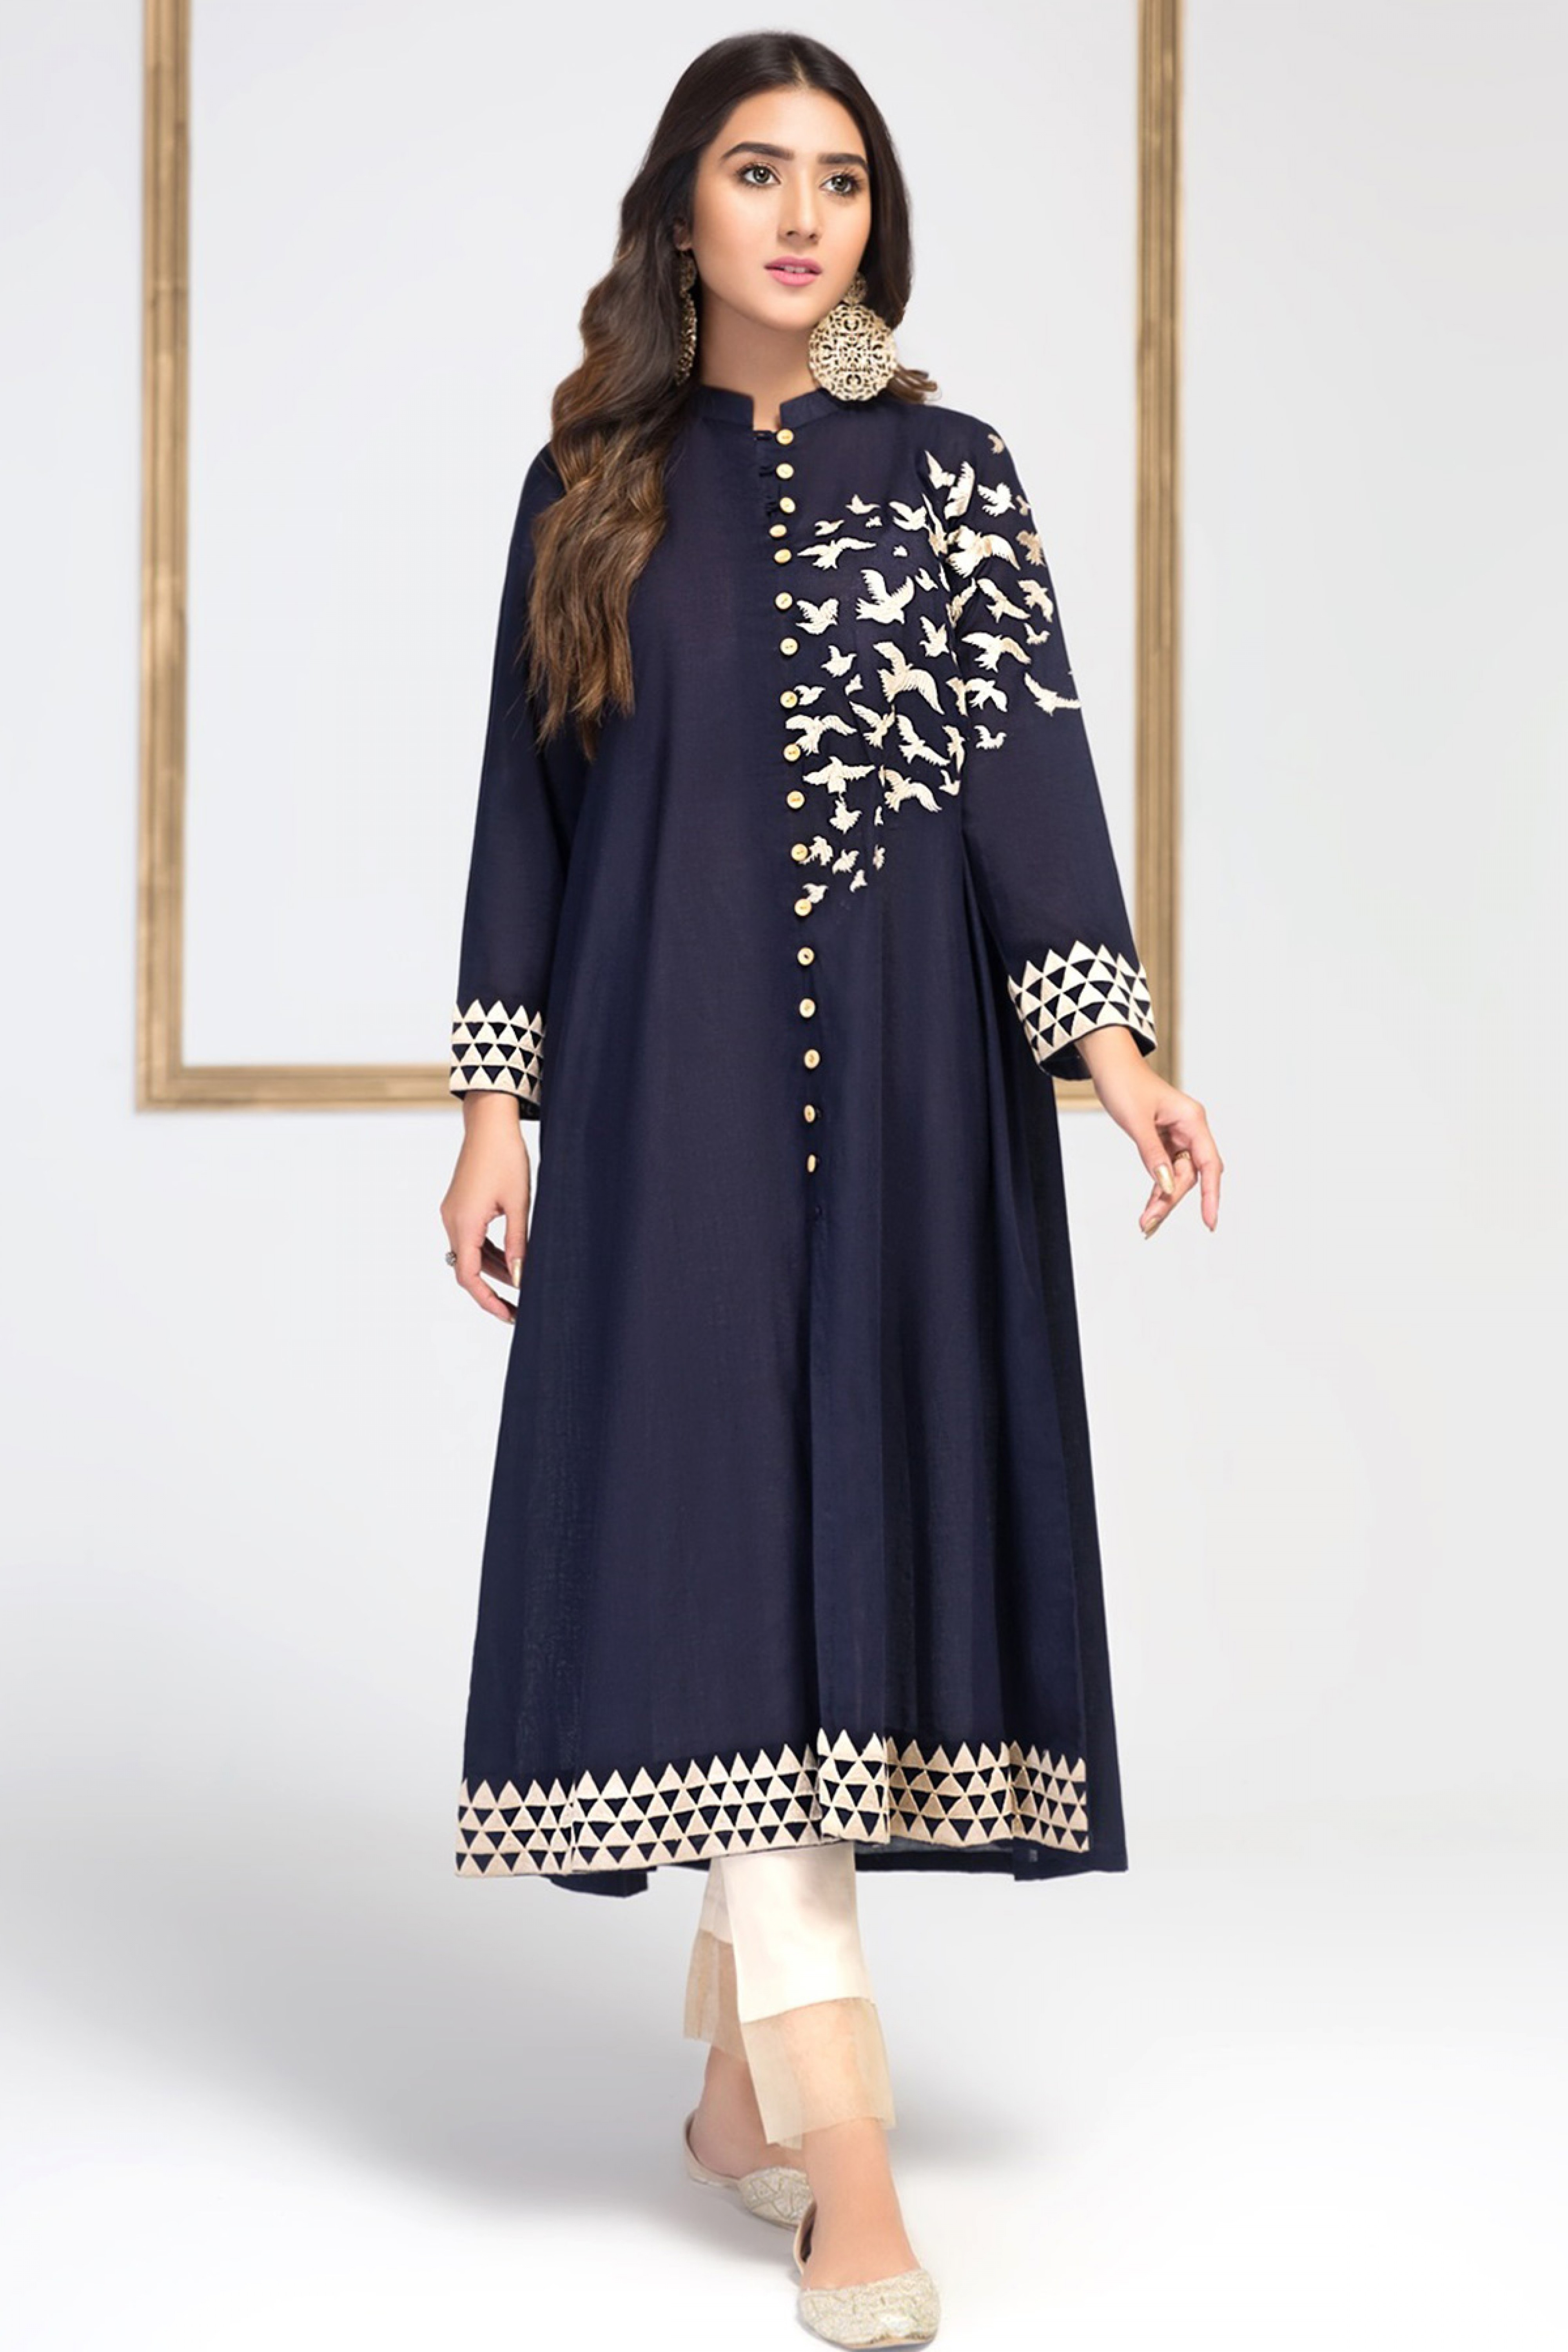 BLUE TOUCH(Embroidered Frock)